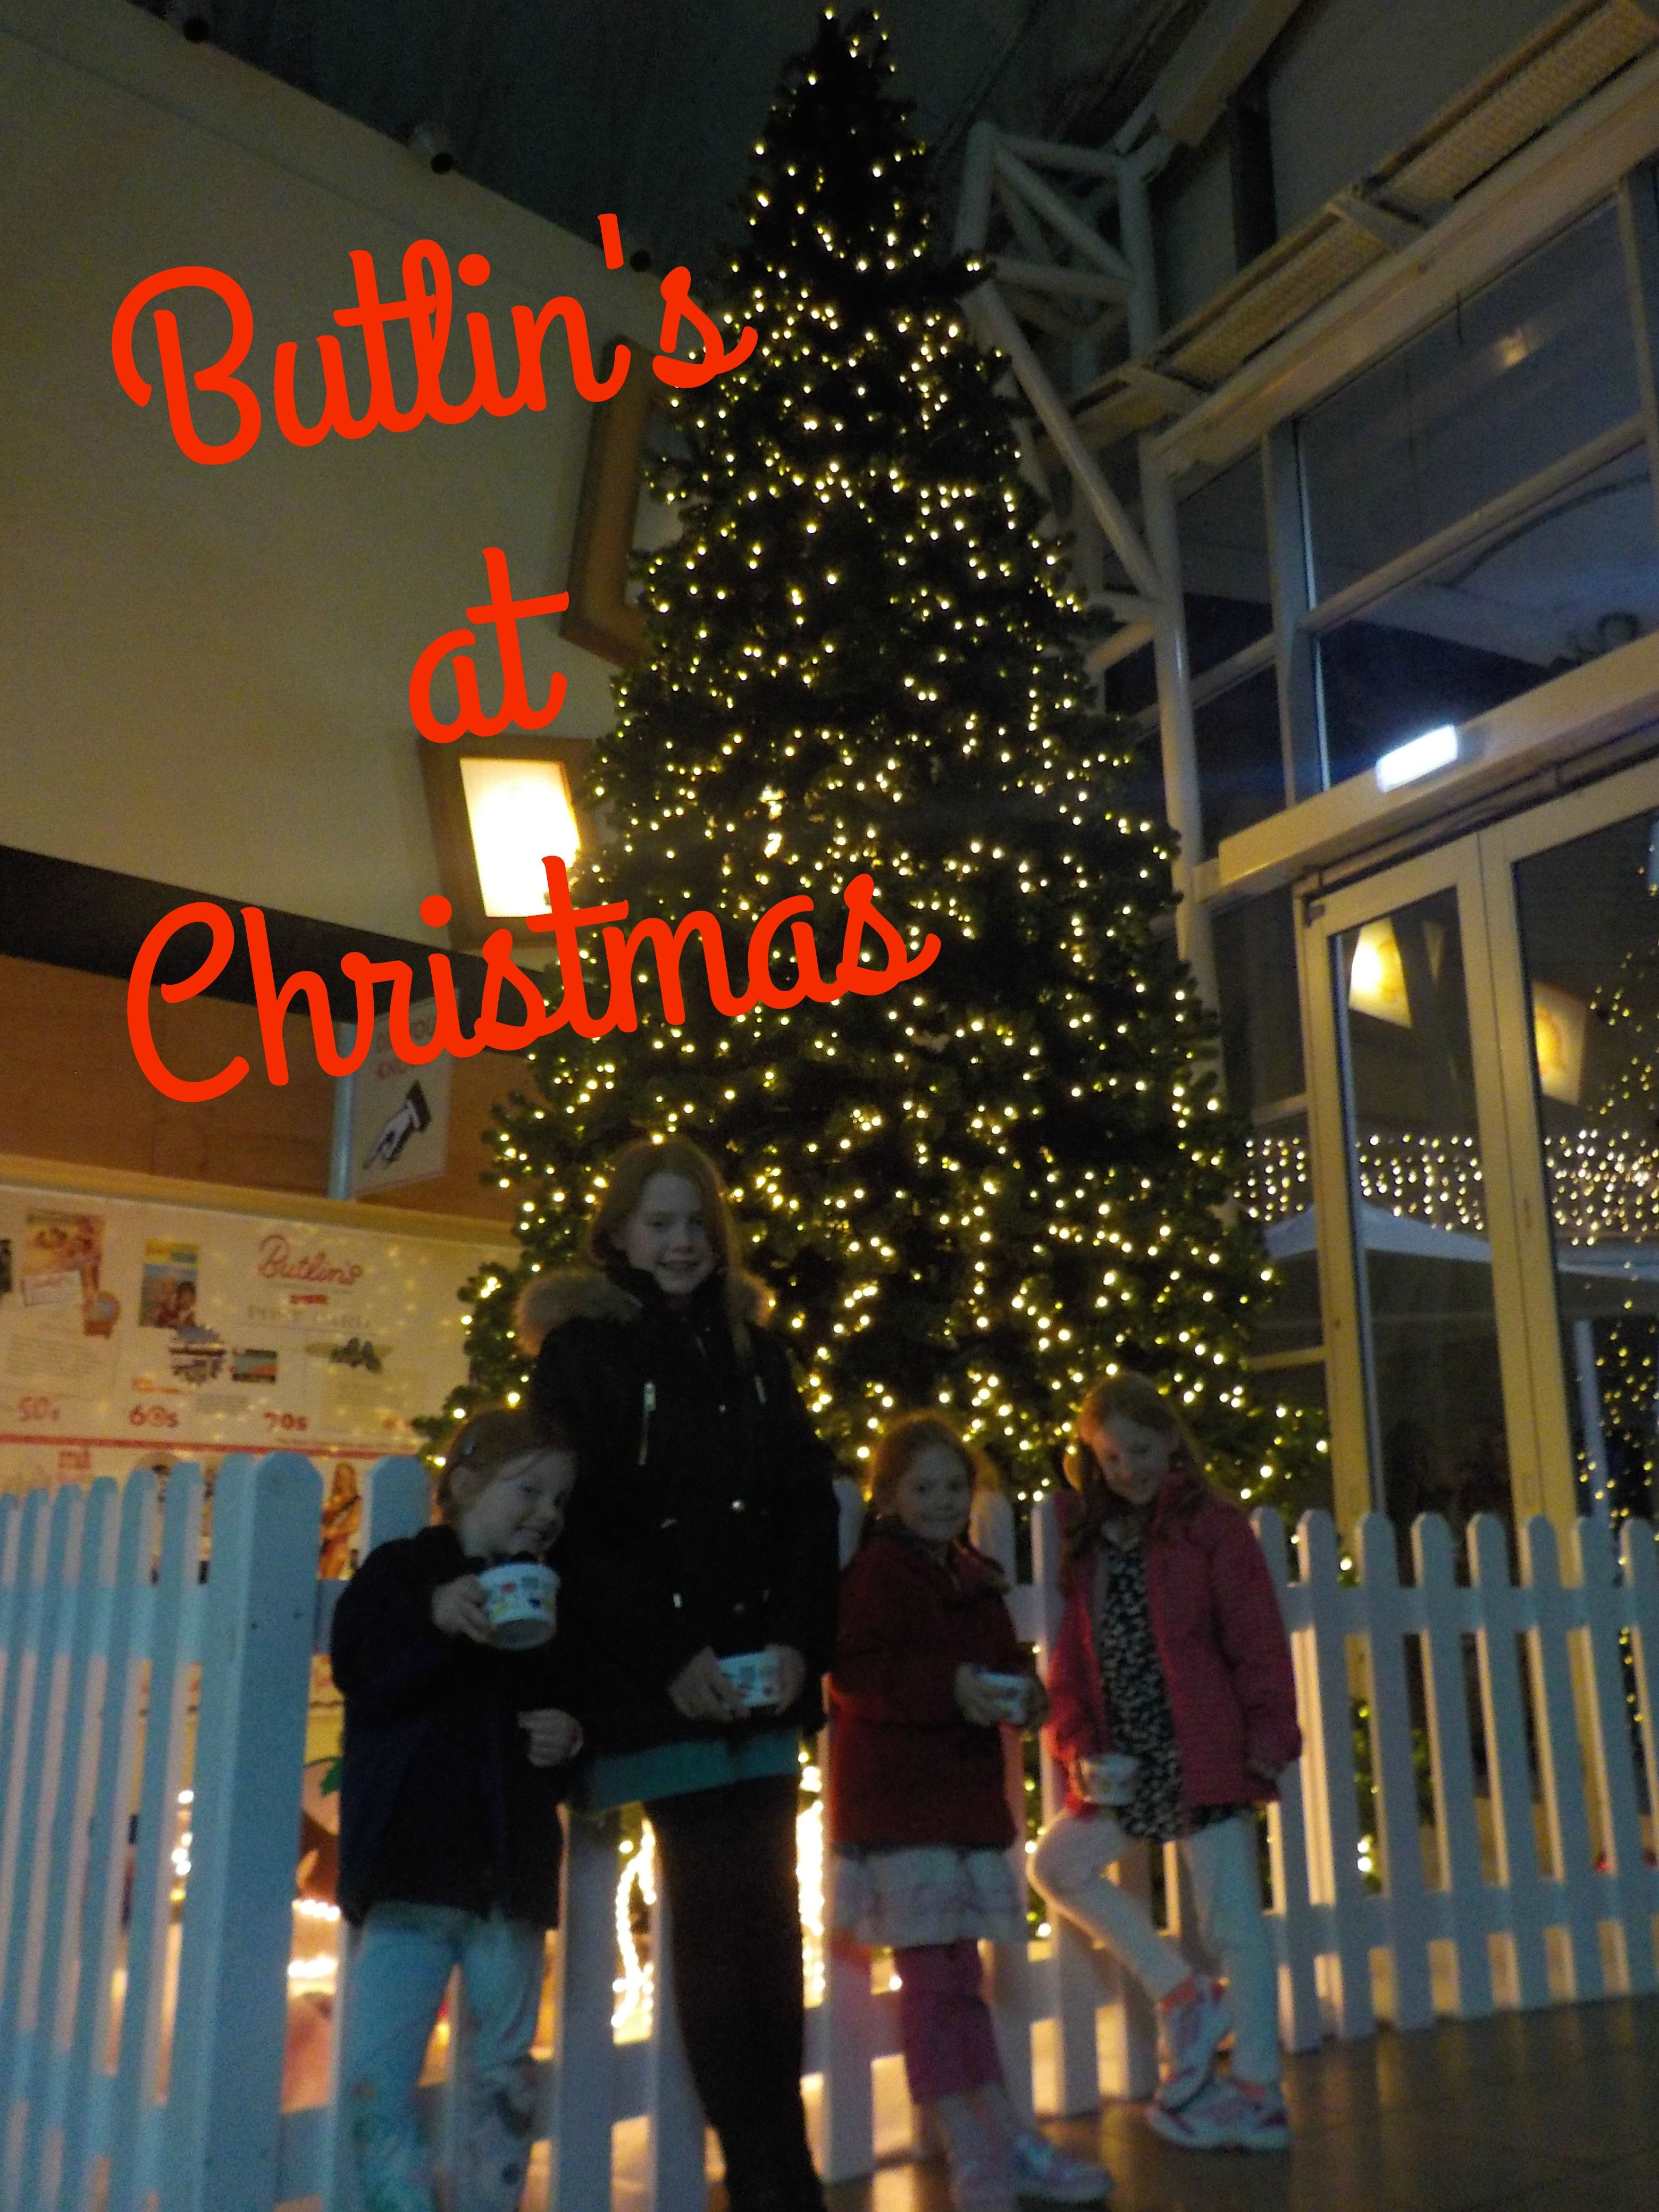 Pin On Butlins Family Holiday